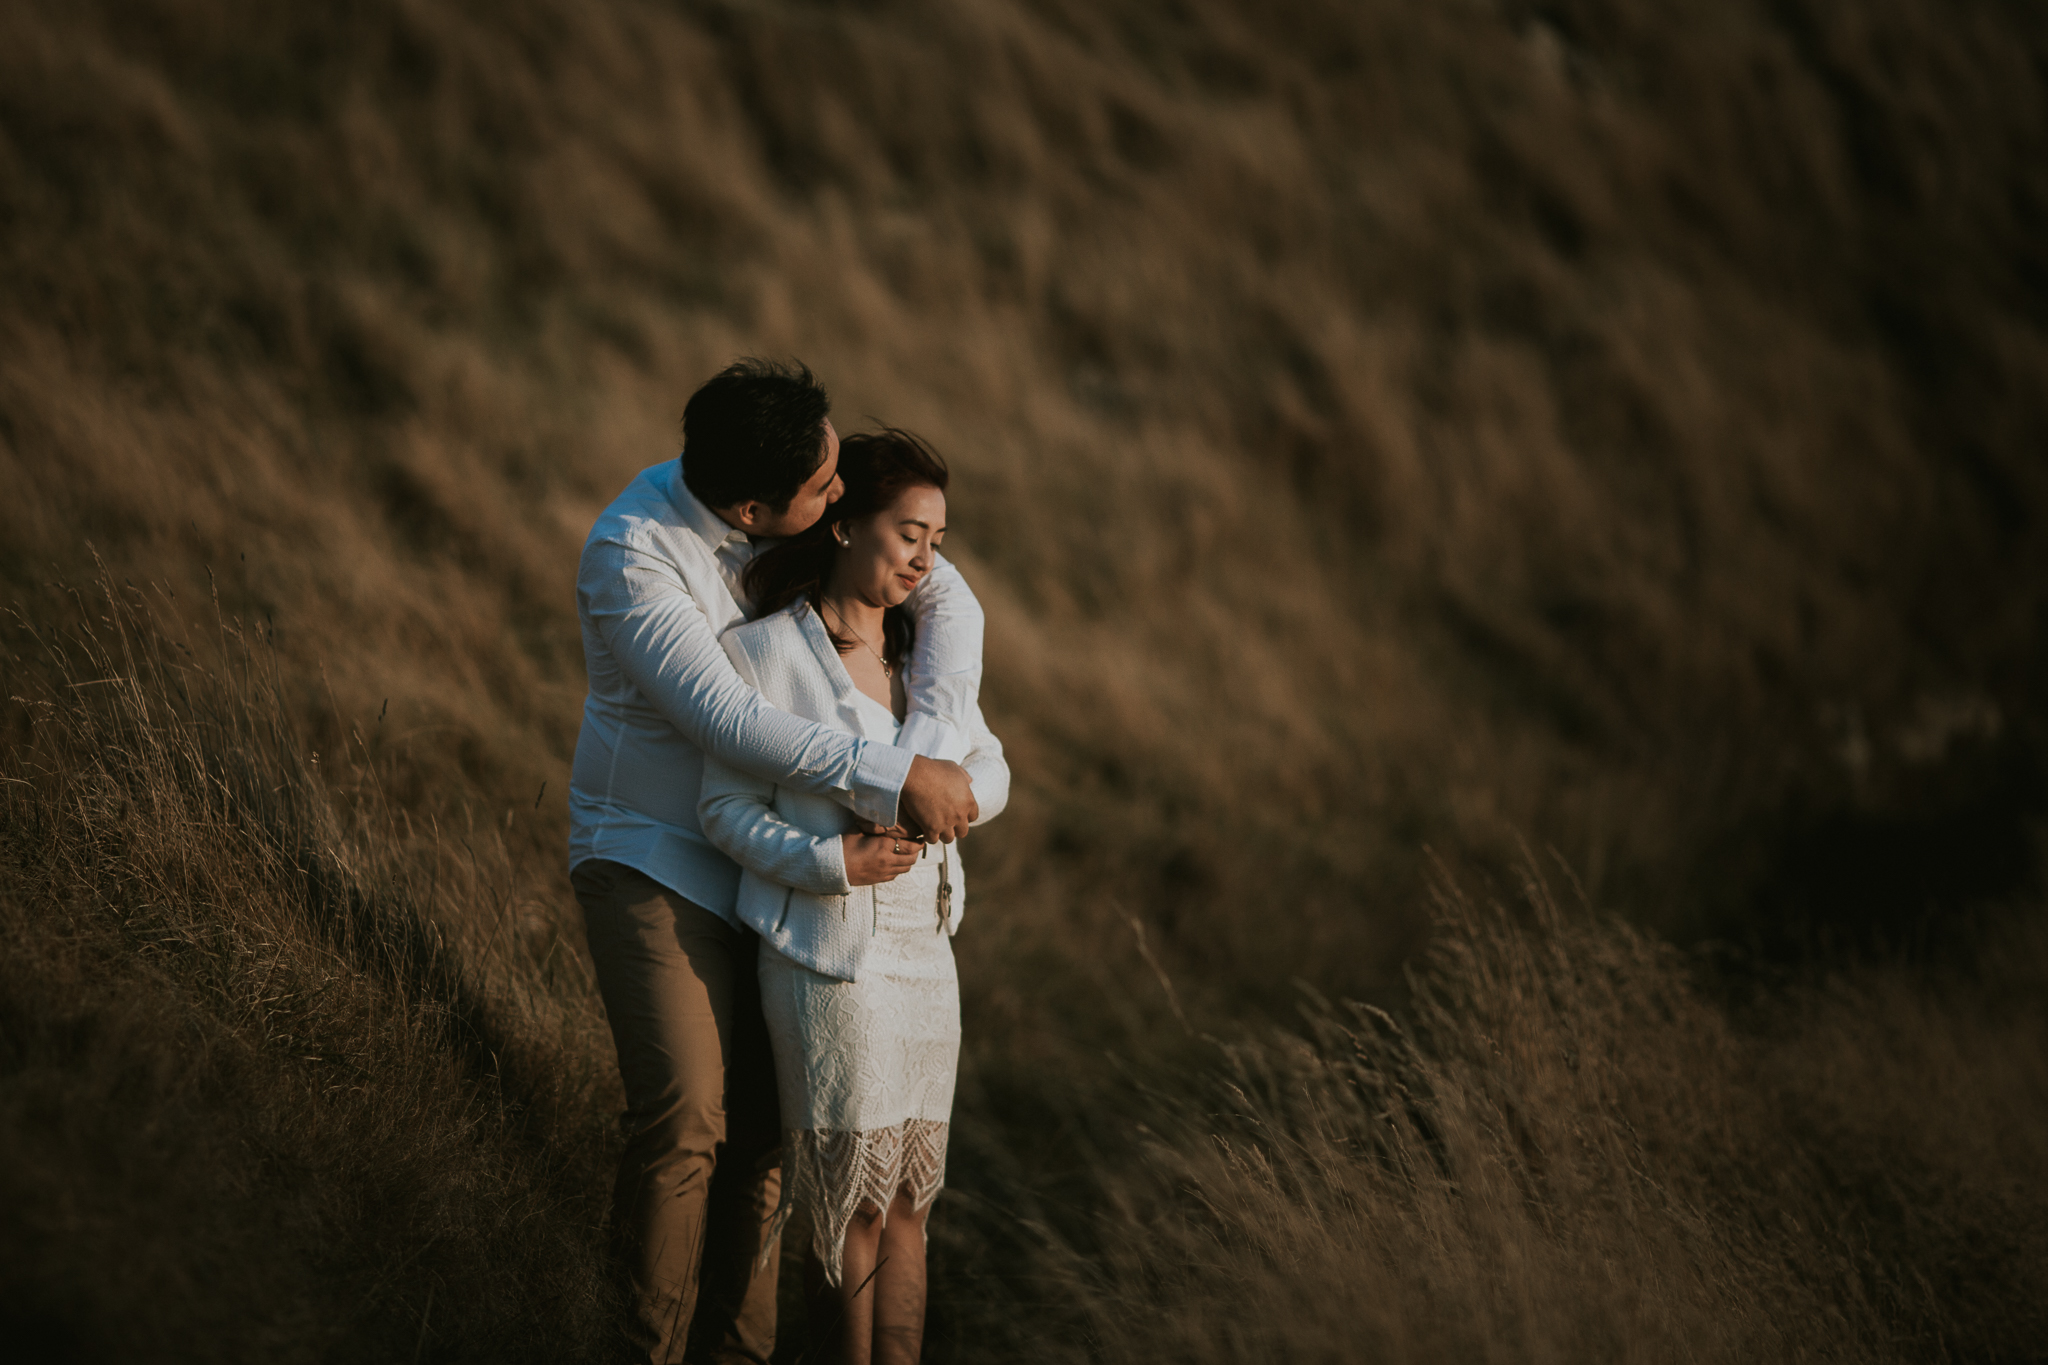 Wedding Photographers Hawkes Bay Te Mata Peak Engagement Shoot Sunset-4.jpg